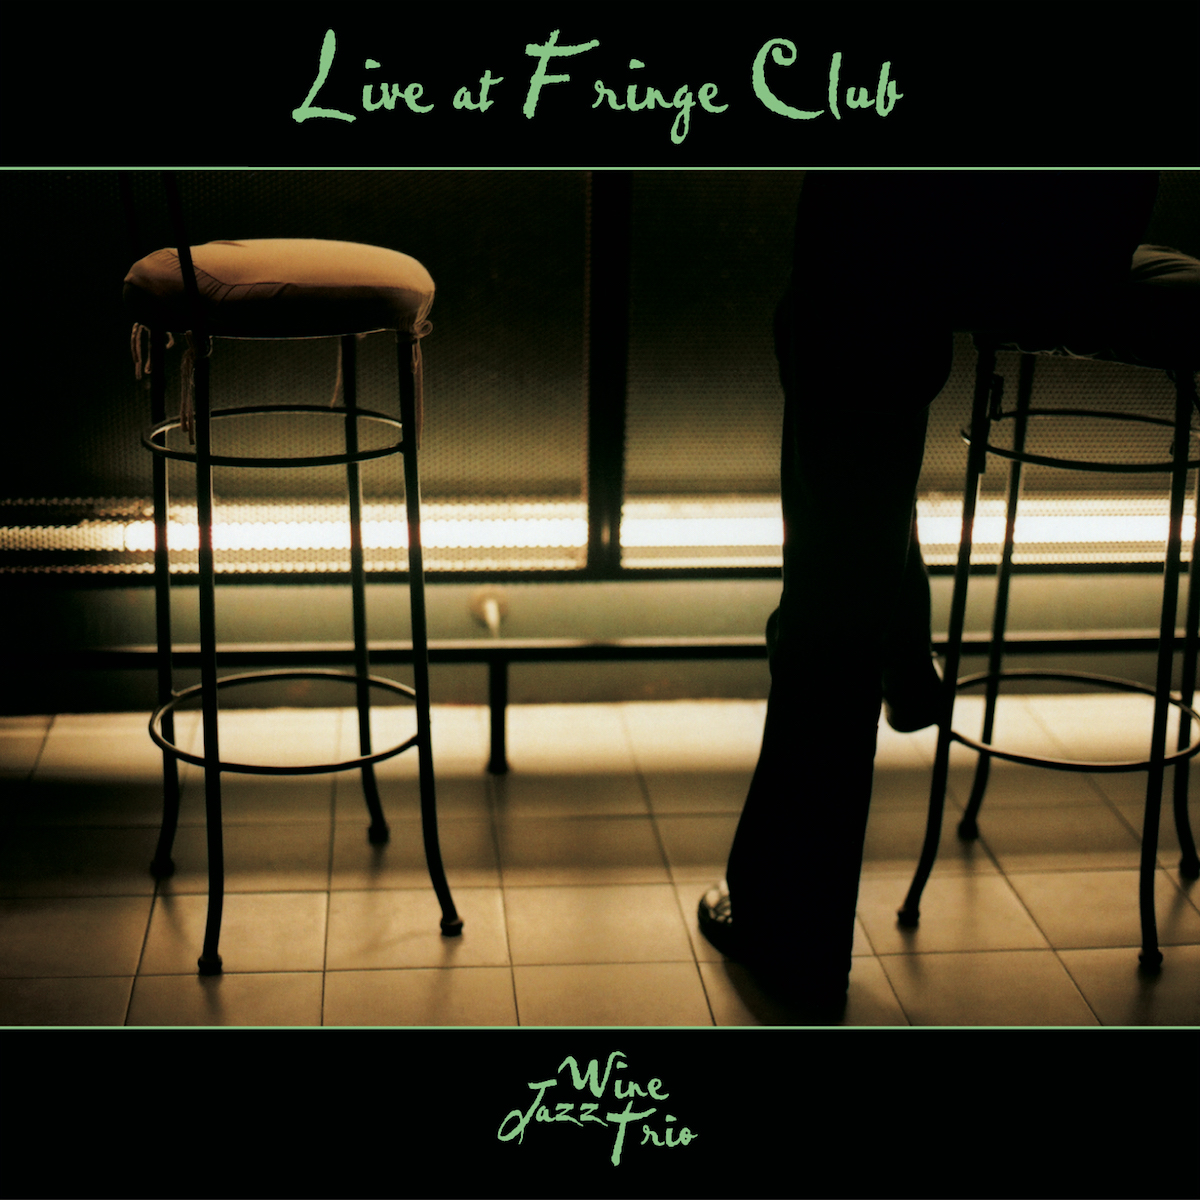 Live at Fringe Club